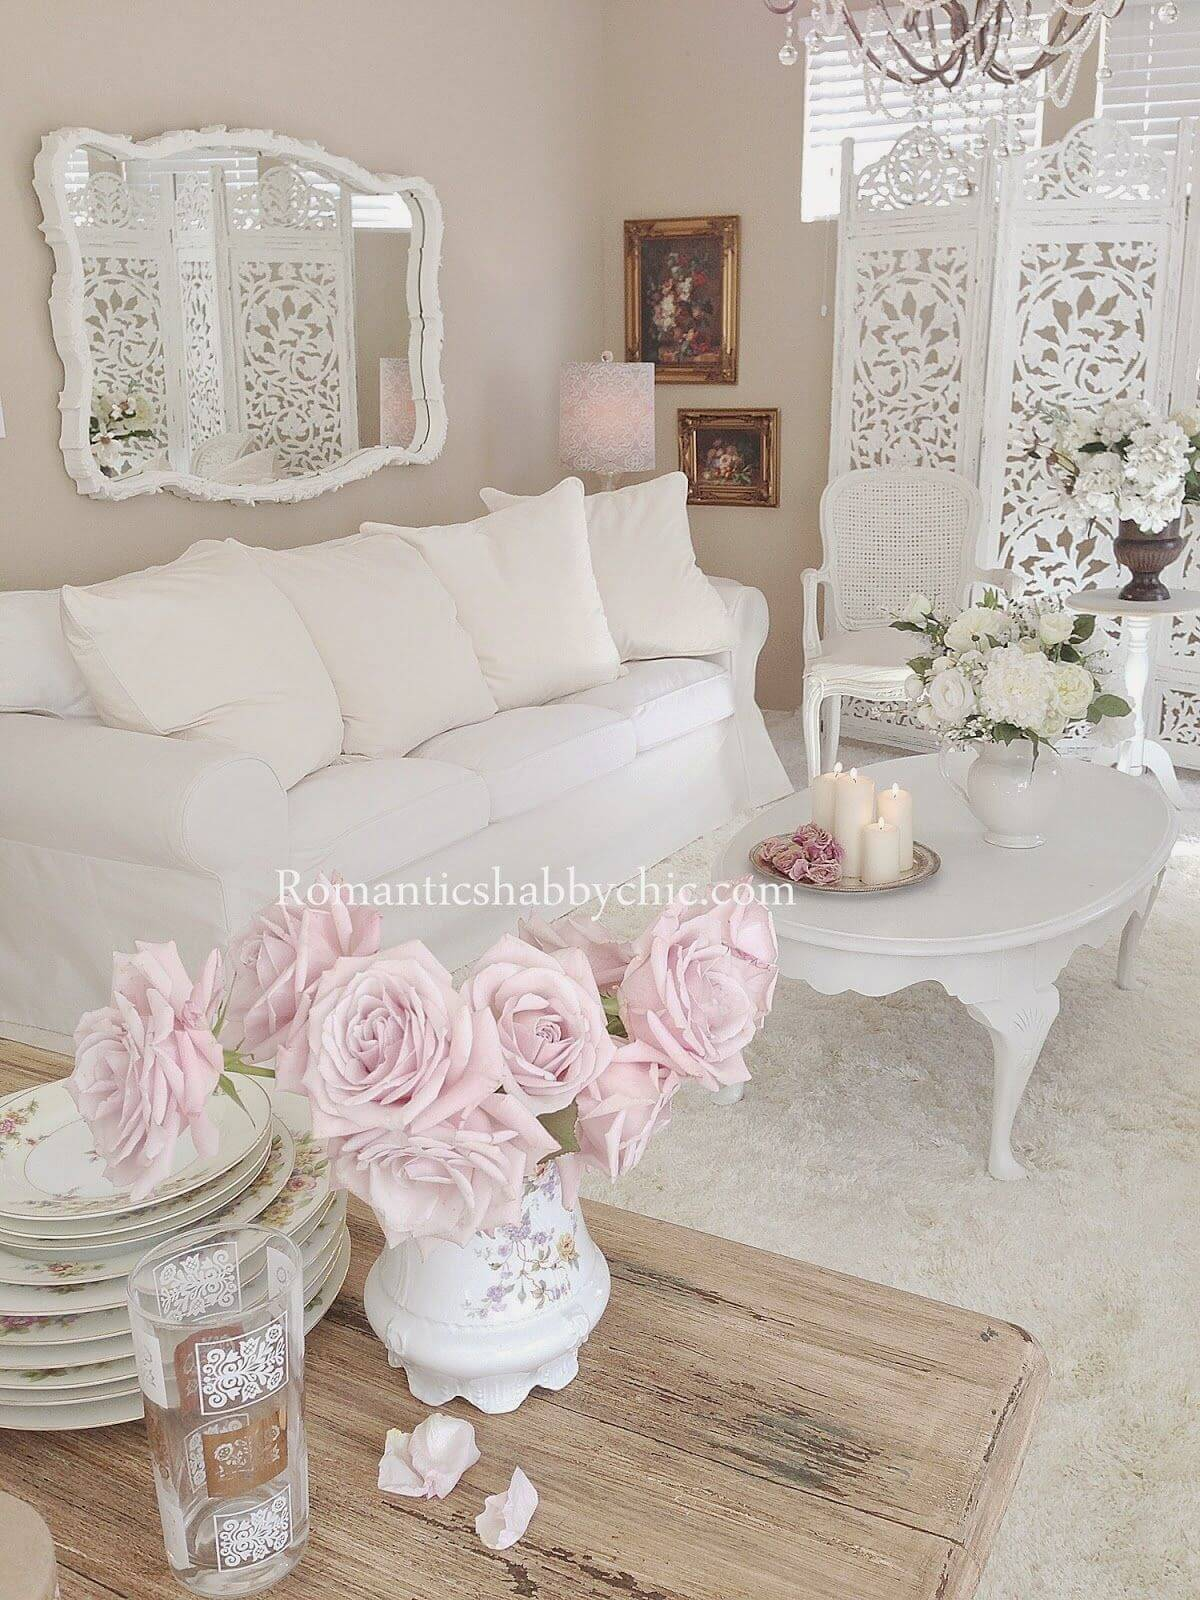 White On White with Pink Flowers